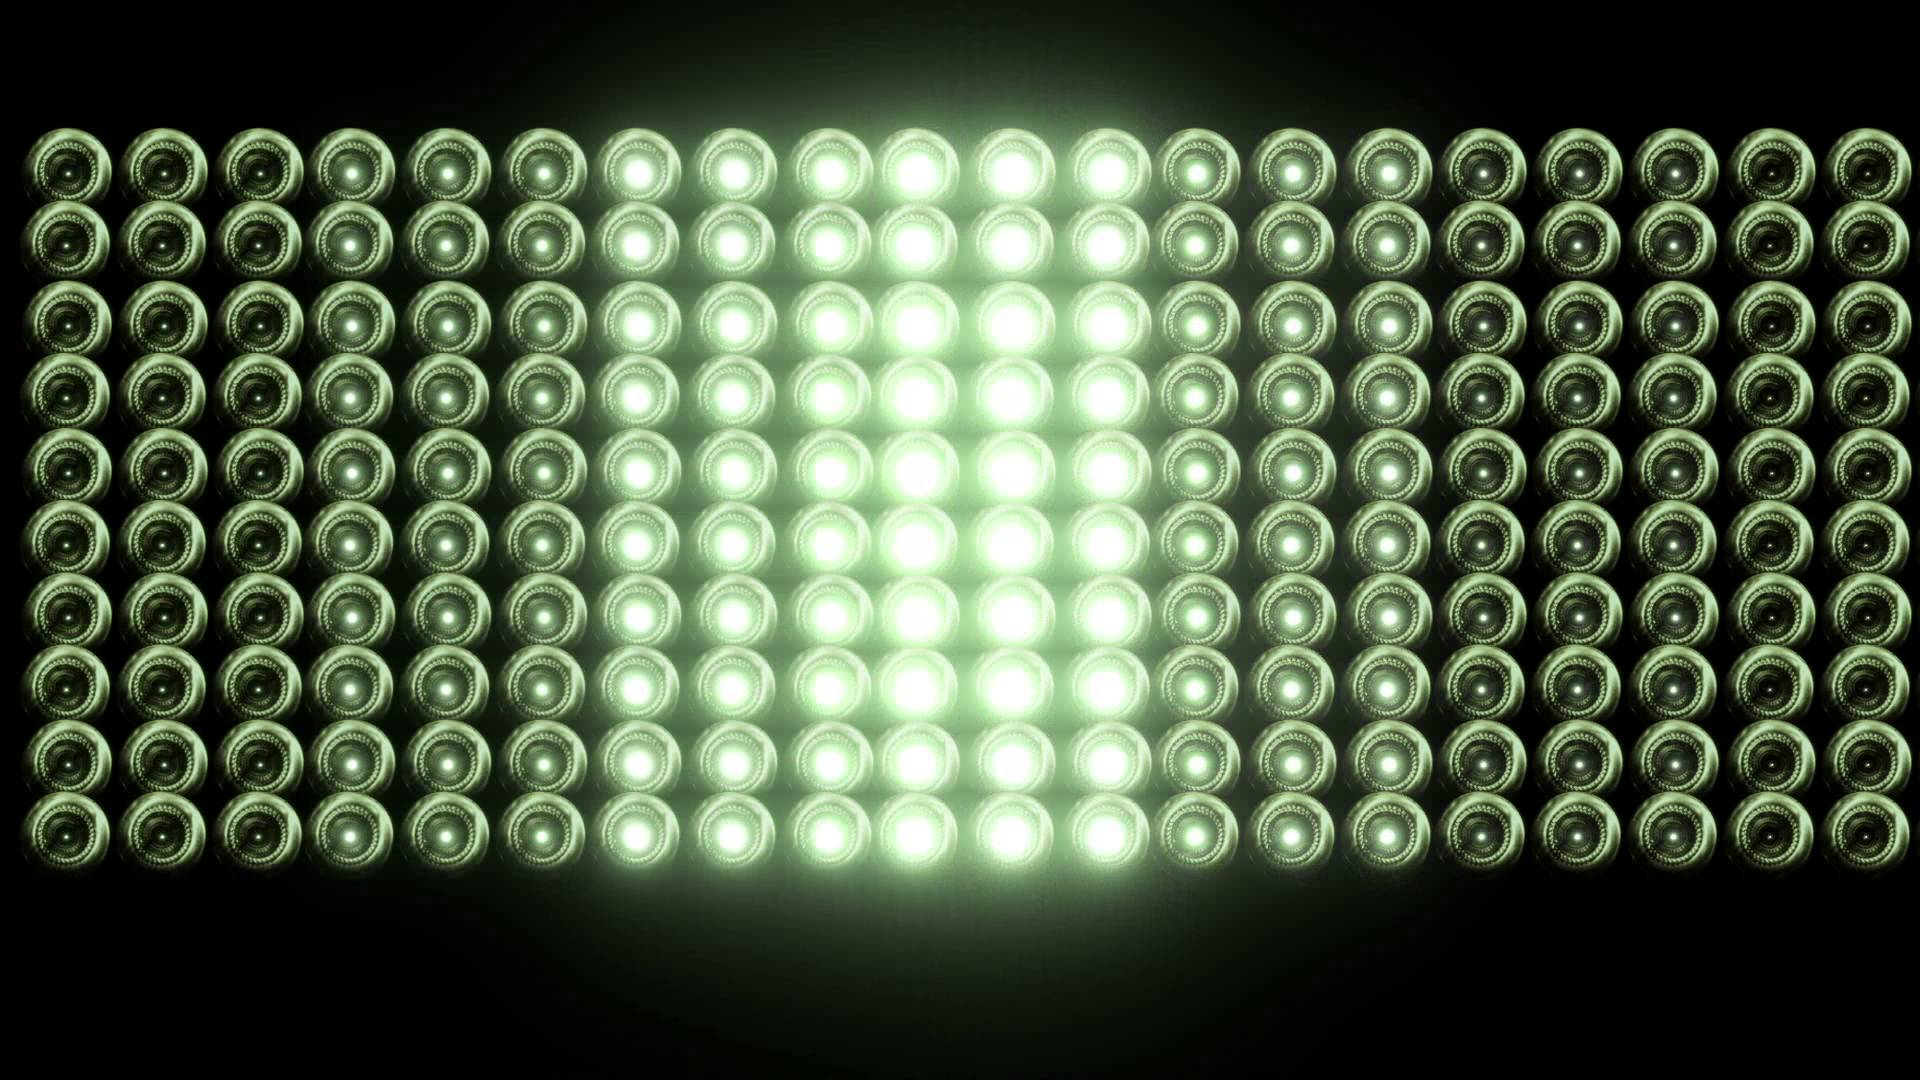 Light bulb wall innovative technology at your home warisan lighting customize it aloadofball Image collections